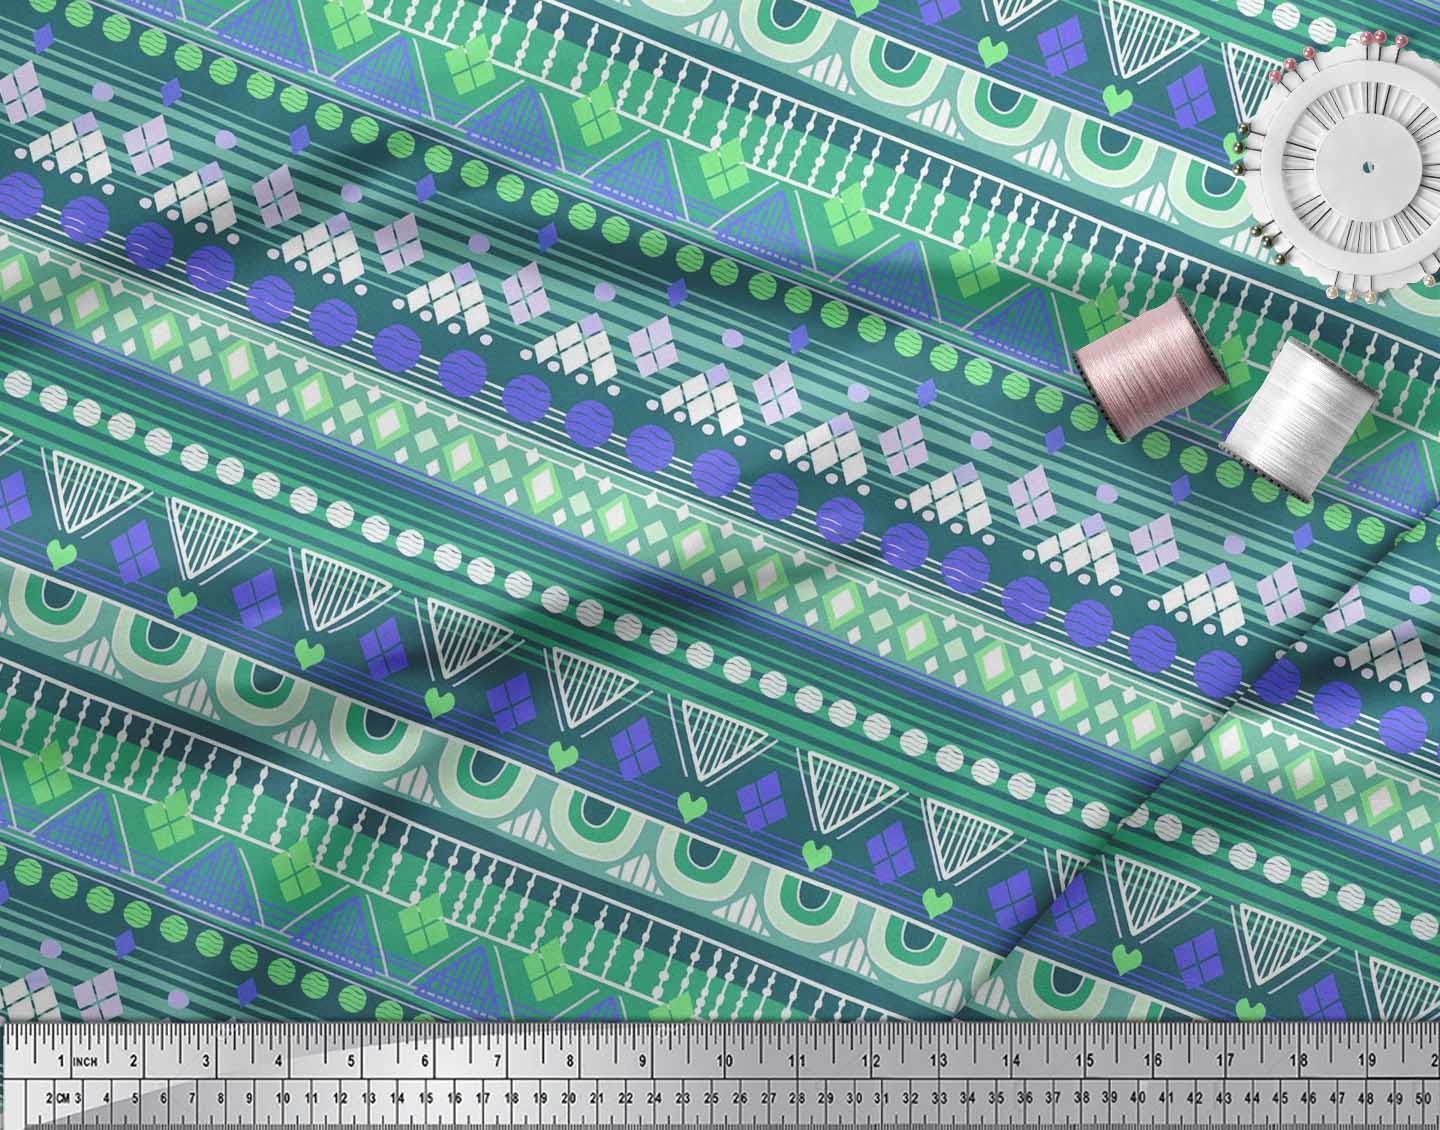 Soimoi-Cotton-Poplin-Fabric-Aztec-Geometric-Print-Fabric-by-the-LKT thumbnail 3